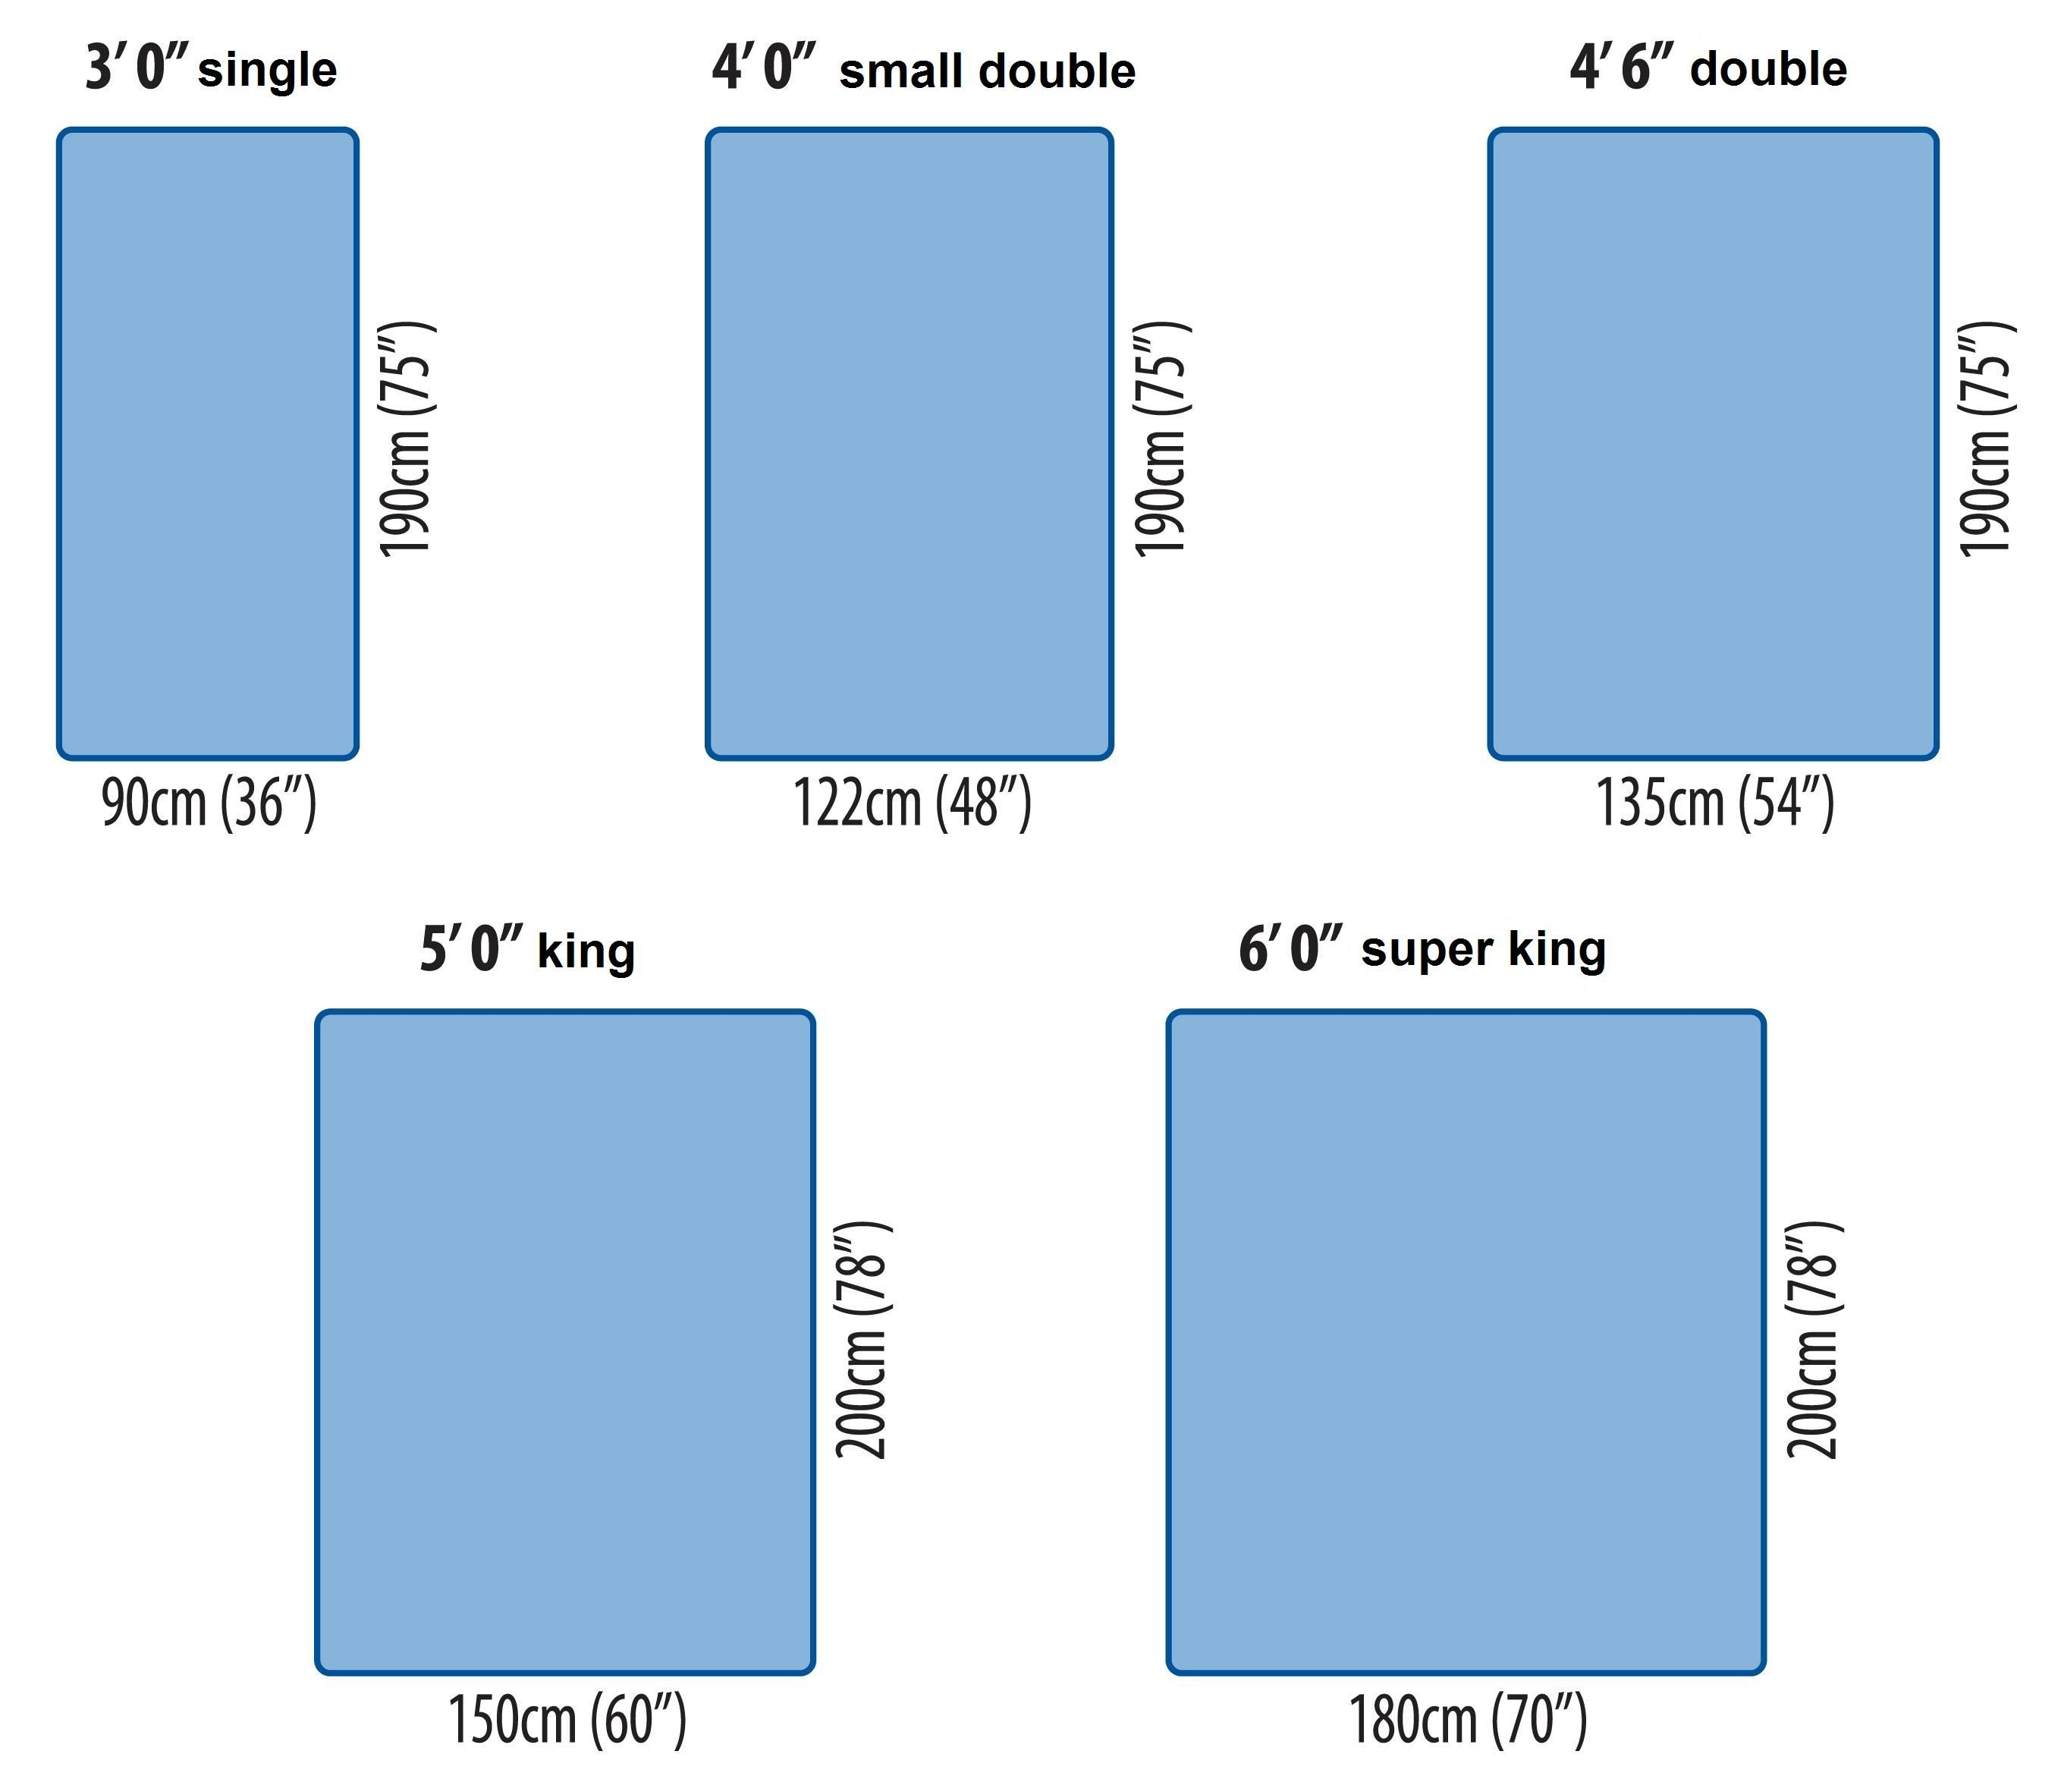 Australian Bed Sizes Compared To Uk